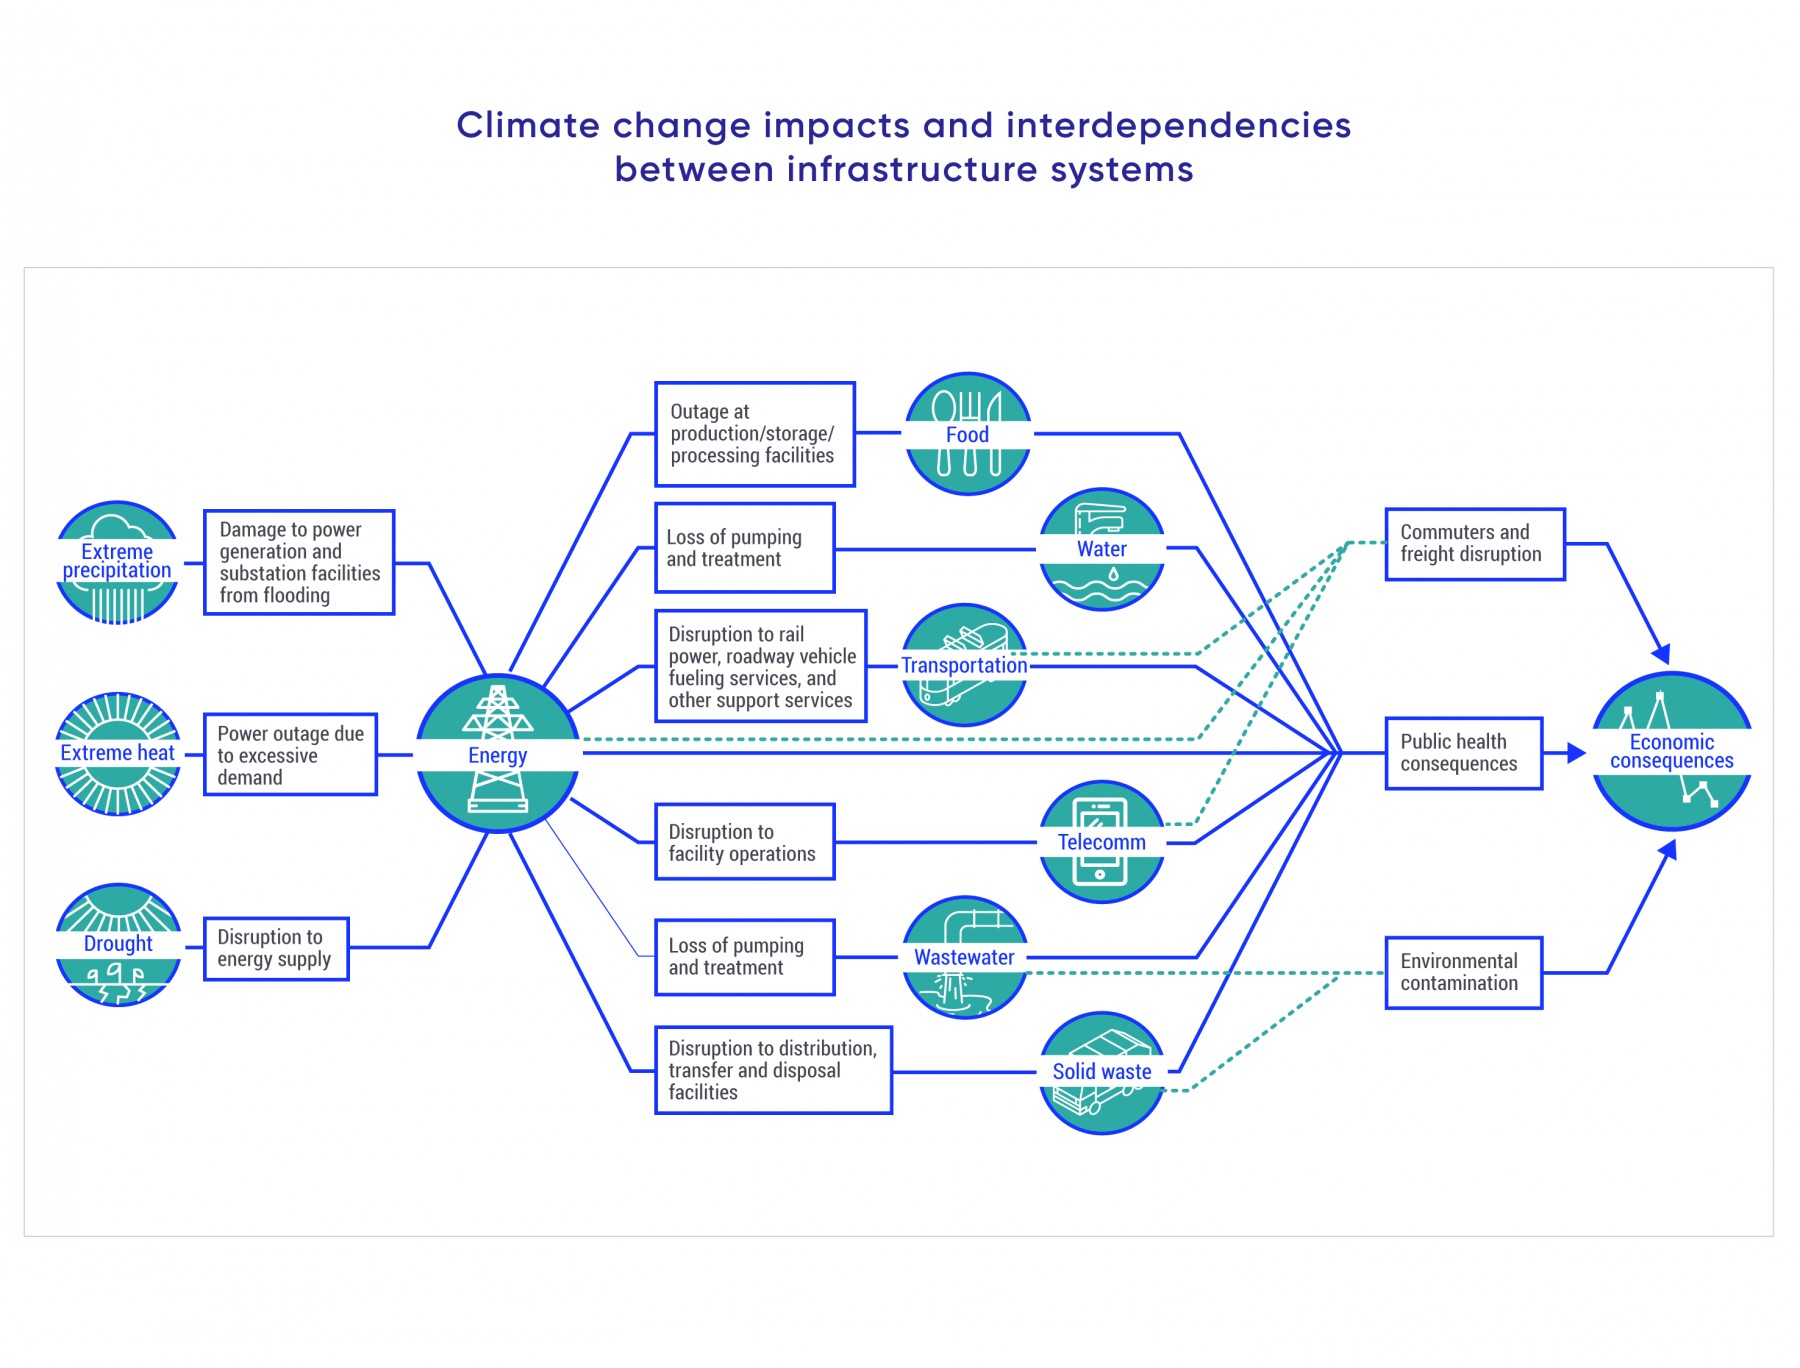 A graphical representation of an example of interdependencies between infrastructure systems. Climate change impacts such as extreme heat, extreme precipitation and drought increase pressure on energy consumption. This in turn put stress on food supply systems, transportation and delivery of services resulting in transportation disruption, public health consequences and environmental contamination. Ultimately, there are economic consequences.